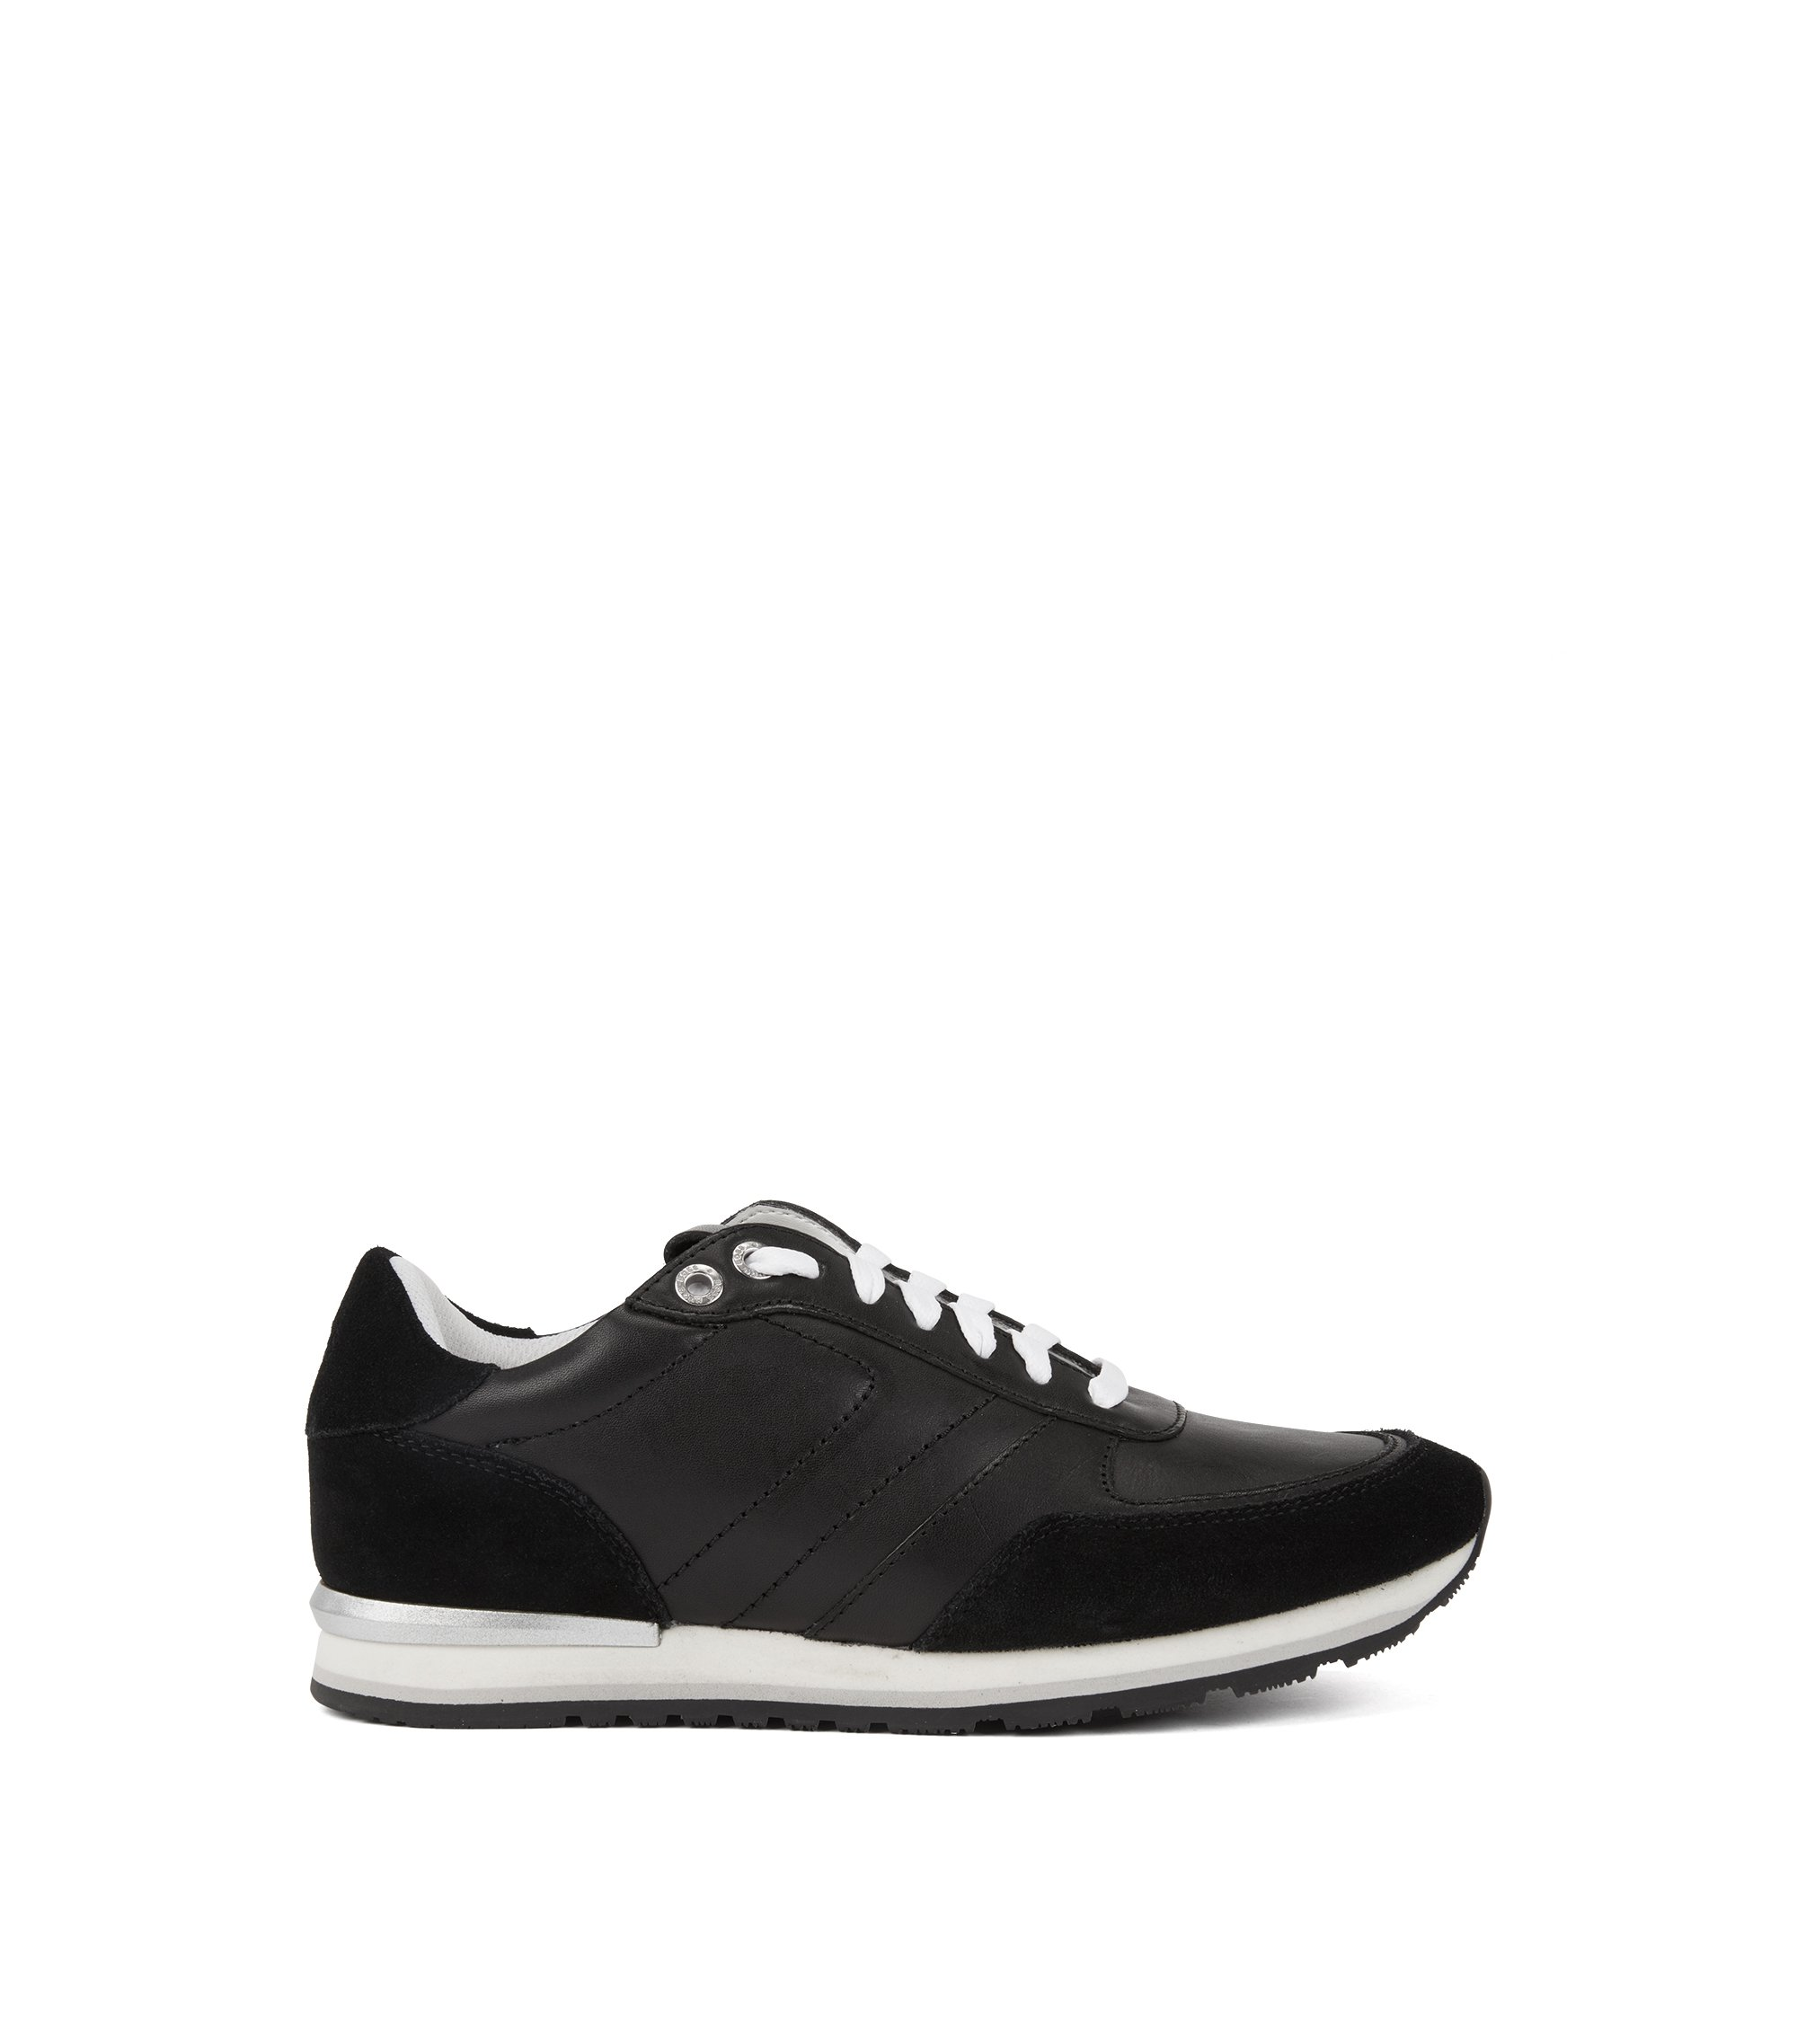 Sneakers stile runner con tomaia in pelle, Nero